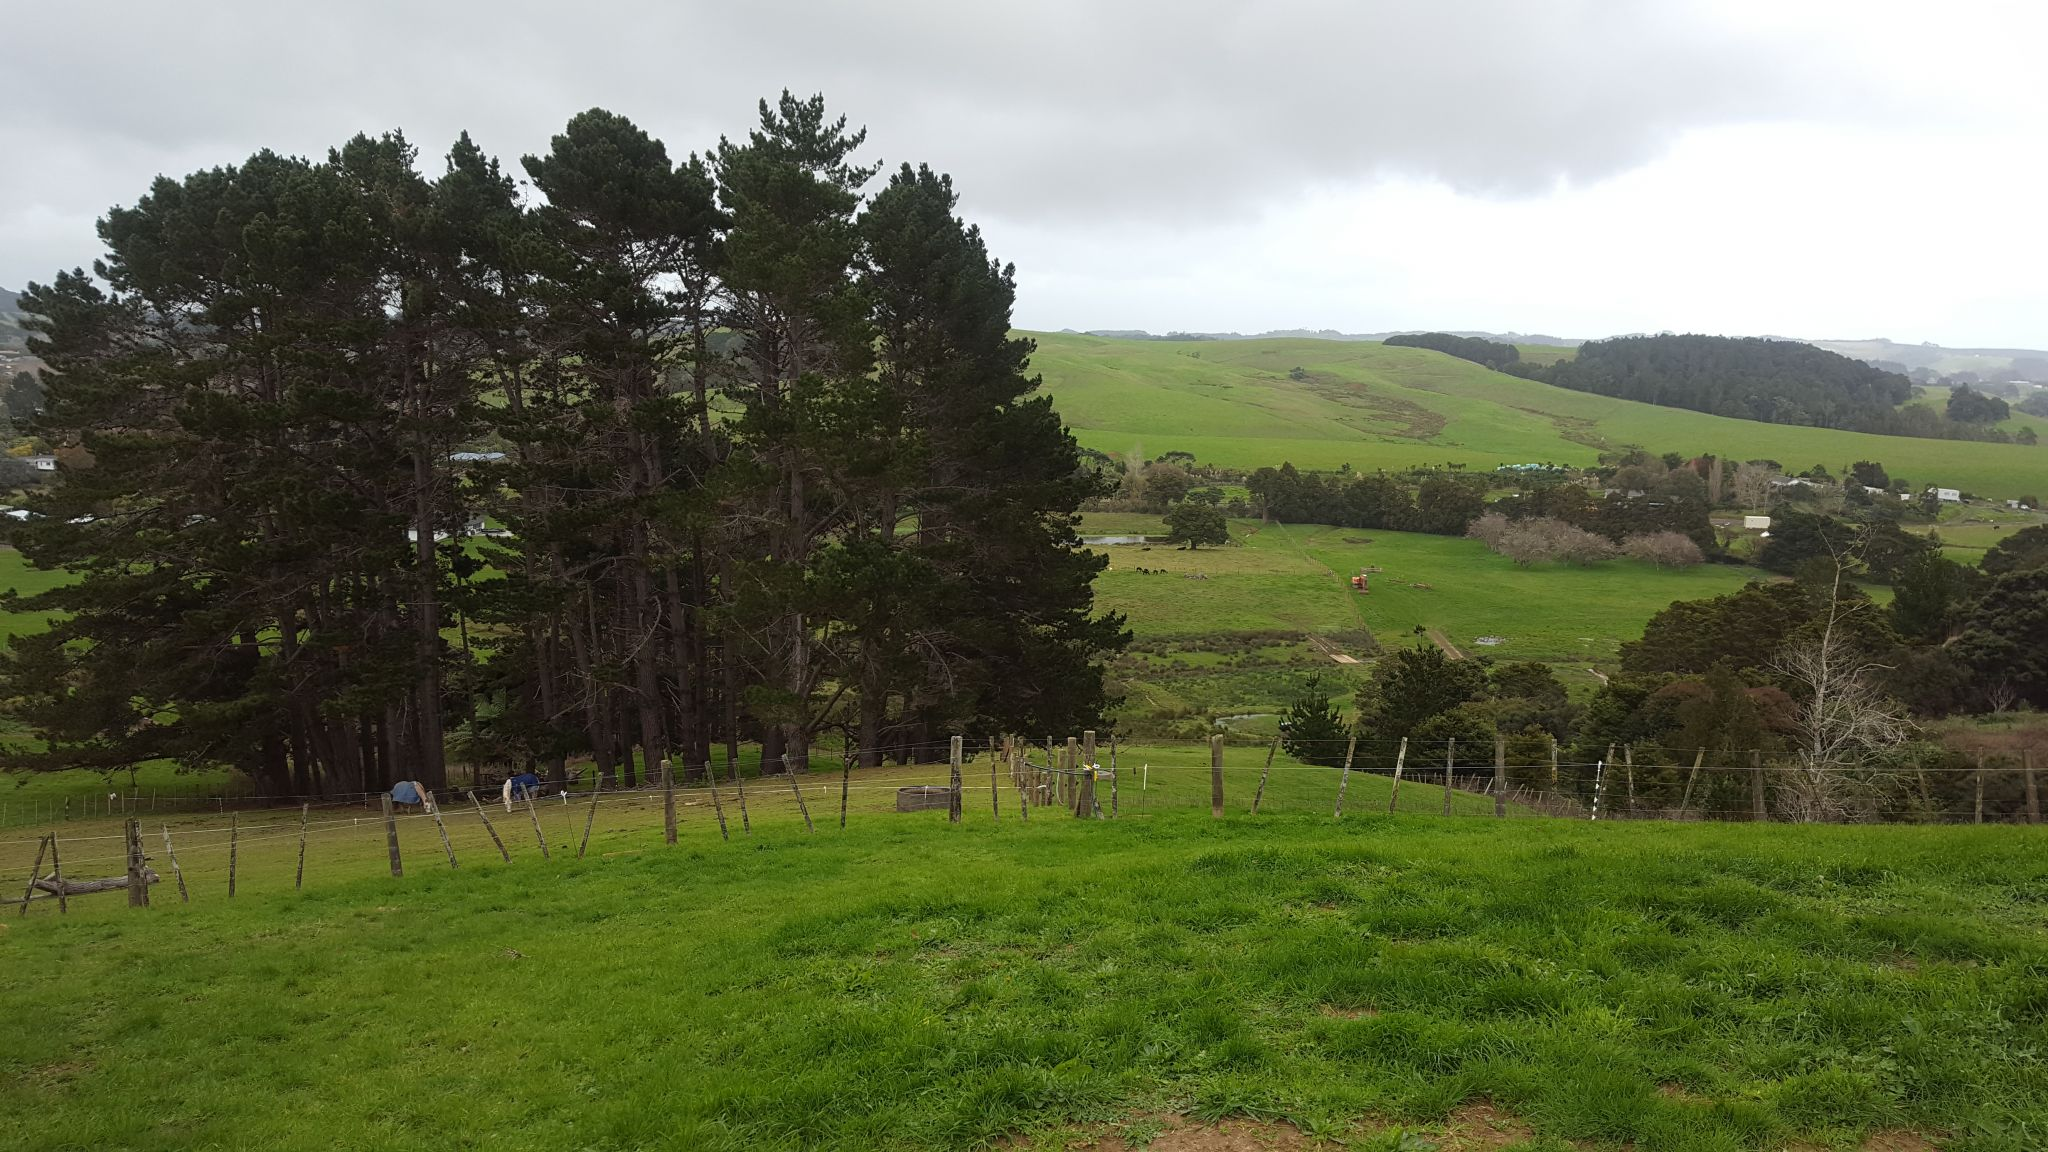 A view of the paddocks